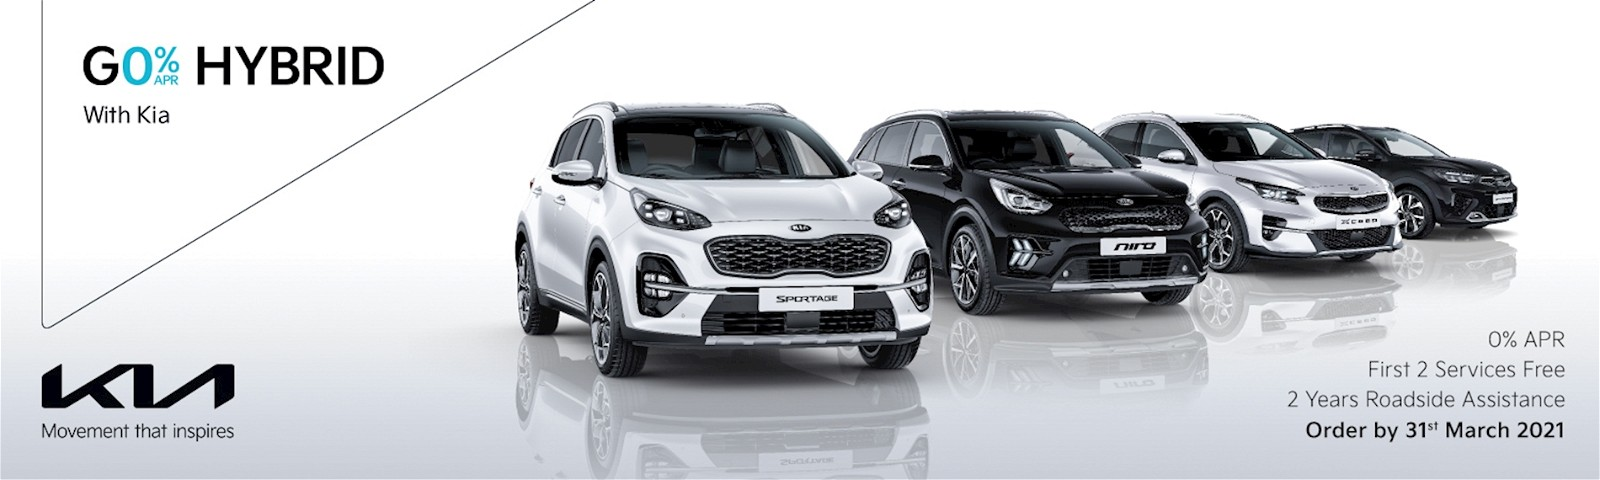 0% APR, 2 free services and 2 years RAC with Kia